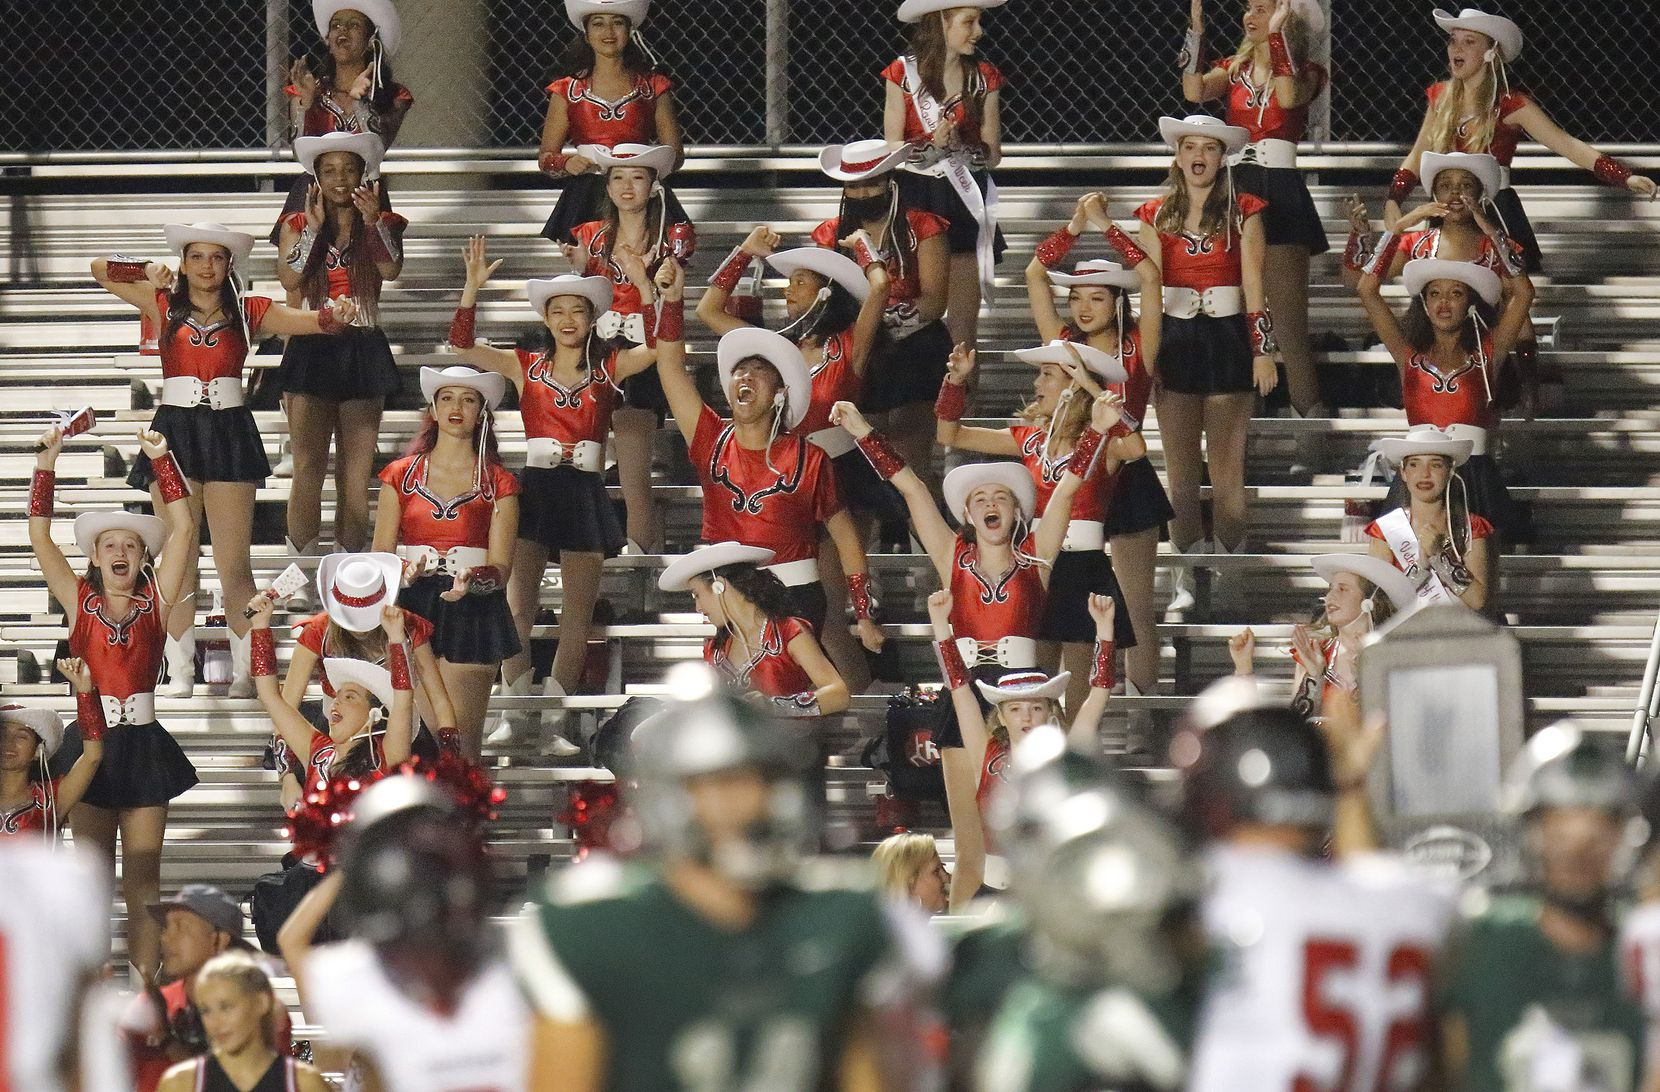 The Liberty High School Red Rythm drill team cheers as their football team tied the score with just seconds left during the second half as Reedy High School hosted Frisco Liberty High School at David Kuykendall Stadium in Frisco on Wednesday night, August 26, 2021. (Stewart F. House/Special Contributor)